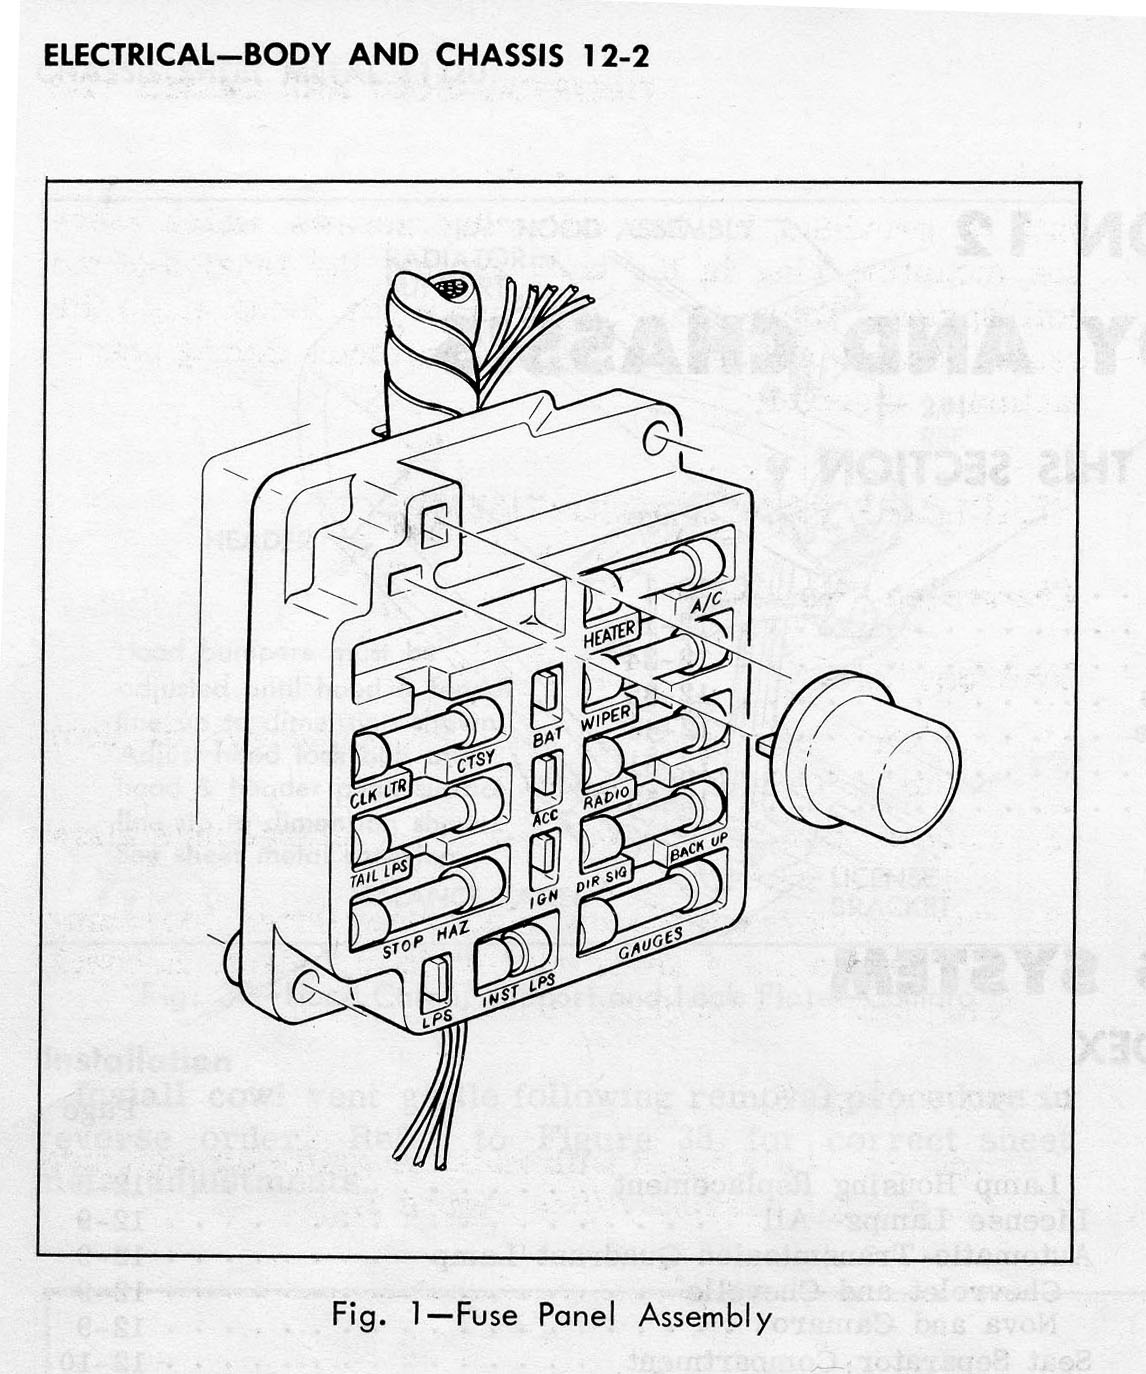 F Body Fuse Box Diagram Wiring Library 1990 Buick Skylark